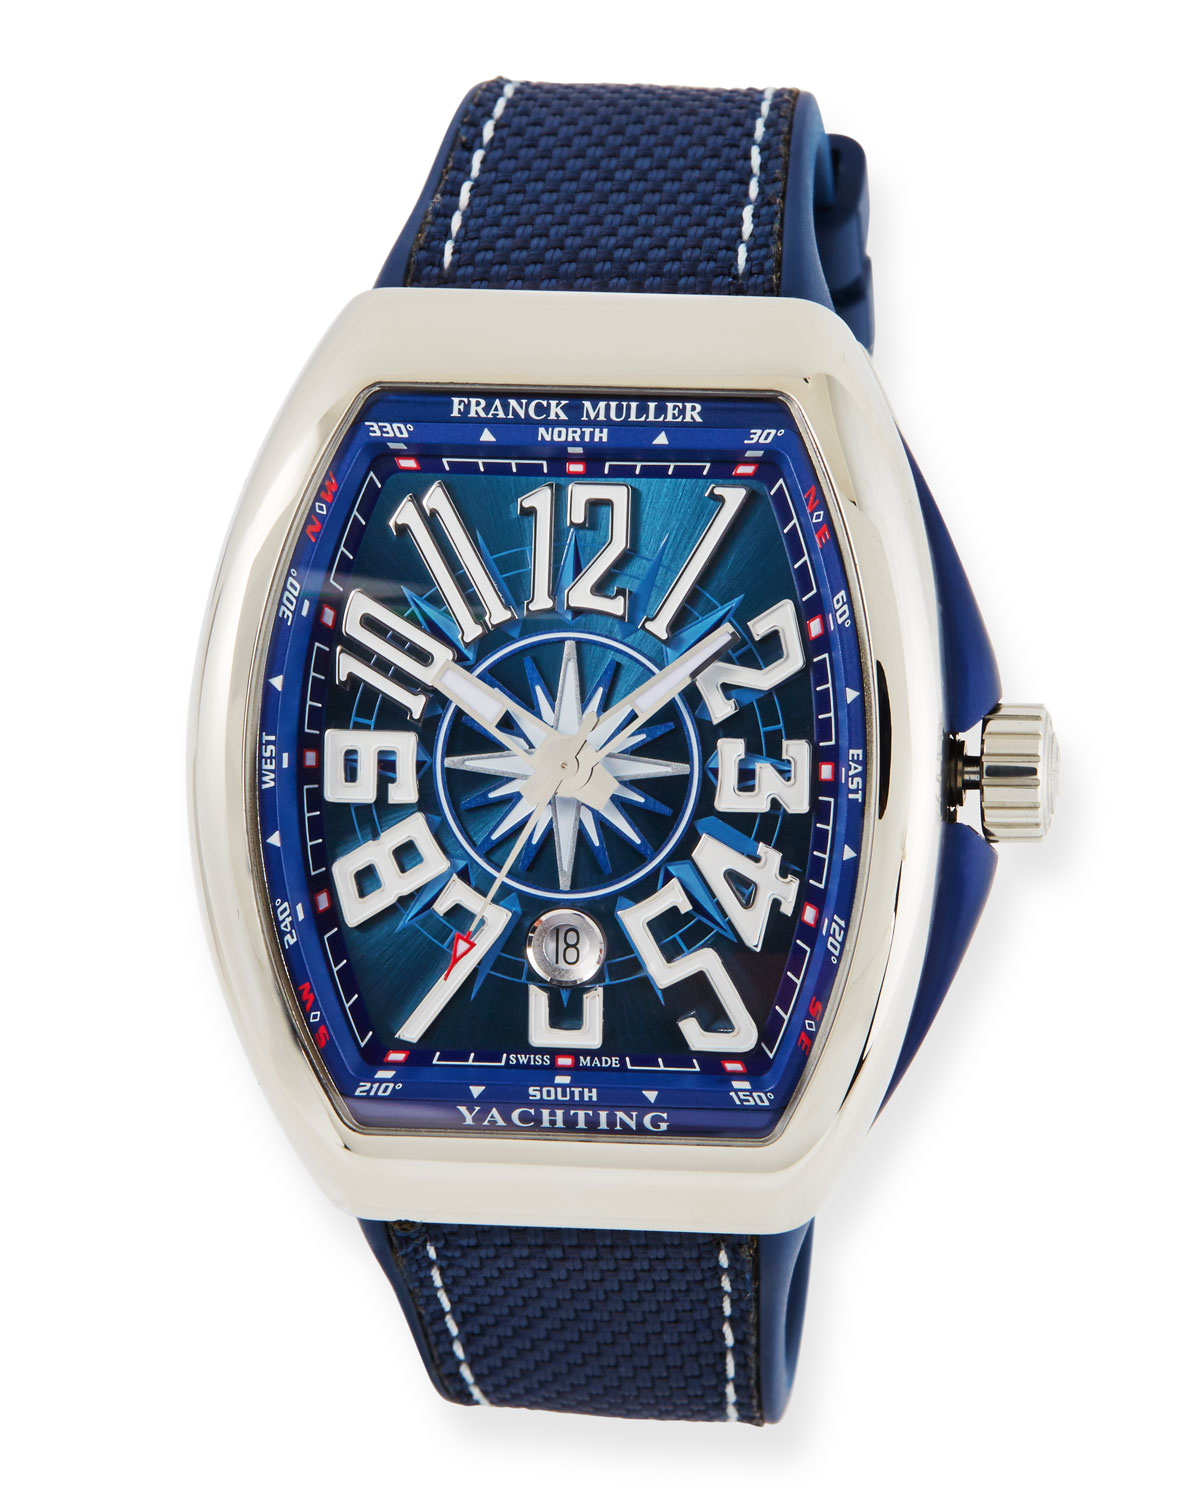 69f35c747f0 Franck Muller Vanguard Yachting Watch with Blue Carbon Fiber Strap ...